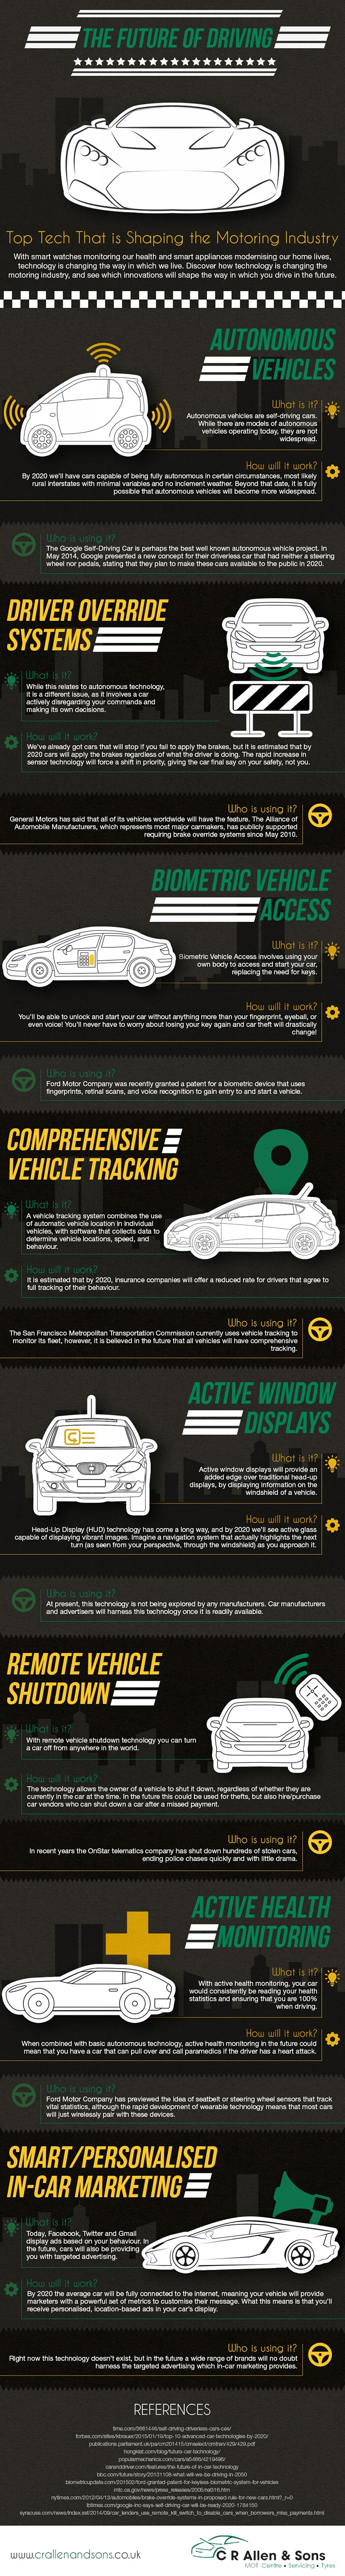 infographic-the-future-of-driving--top-tech-shaping-the-motoring_5616031fdc5ae_w1500